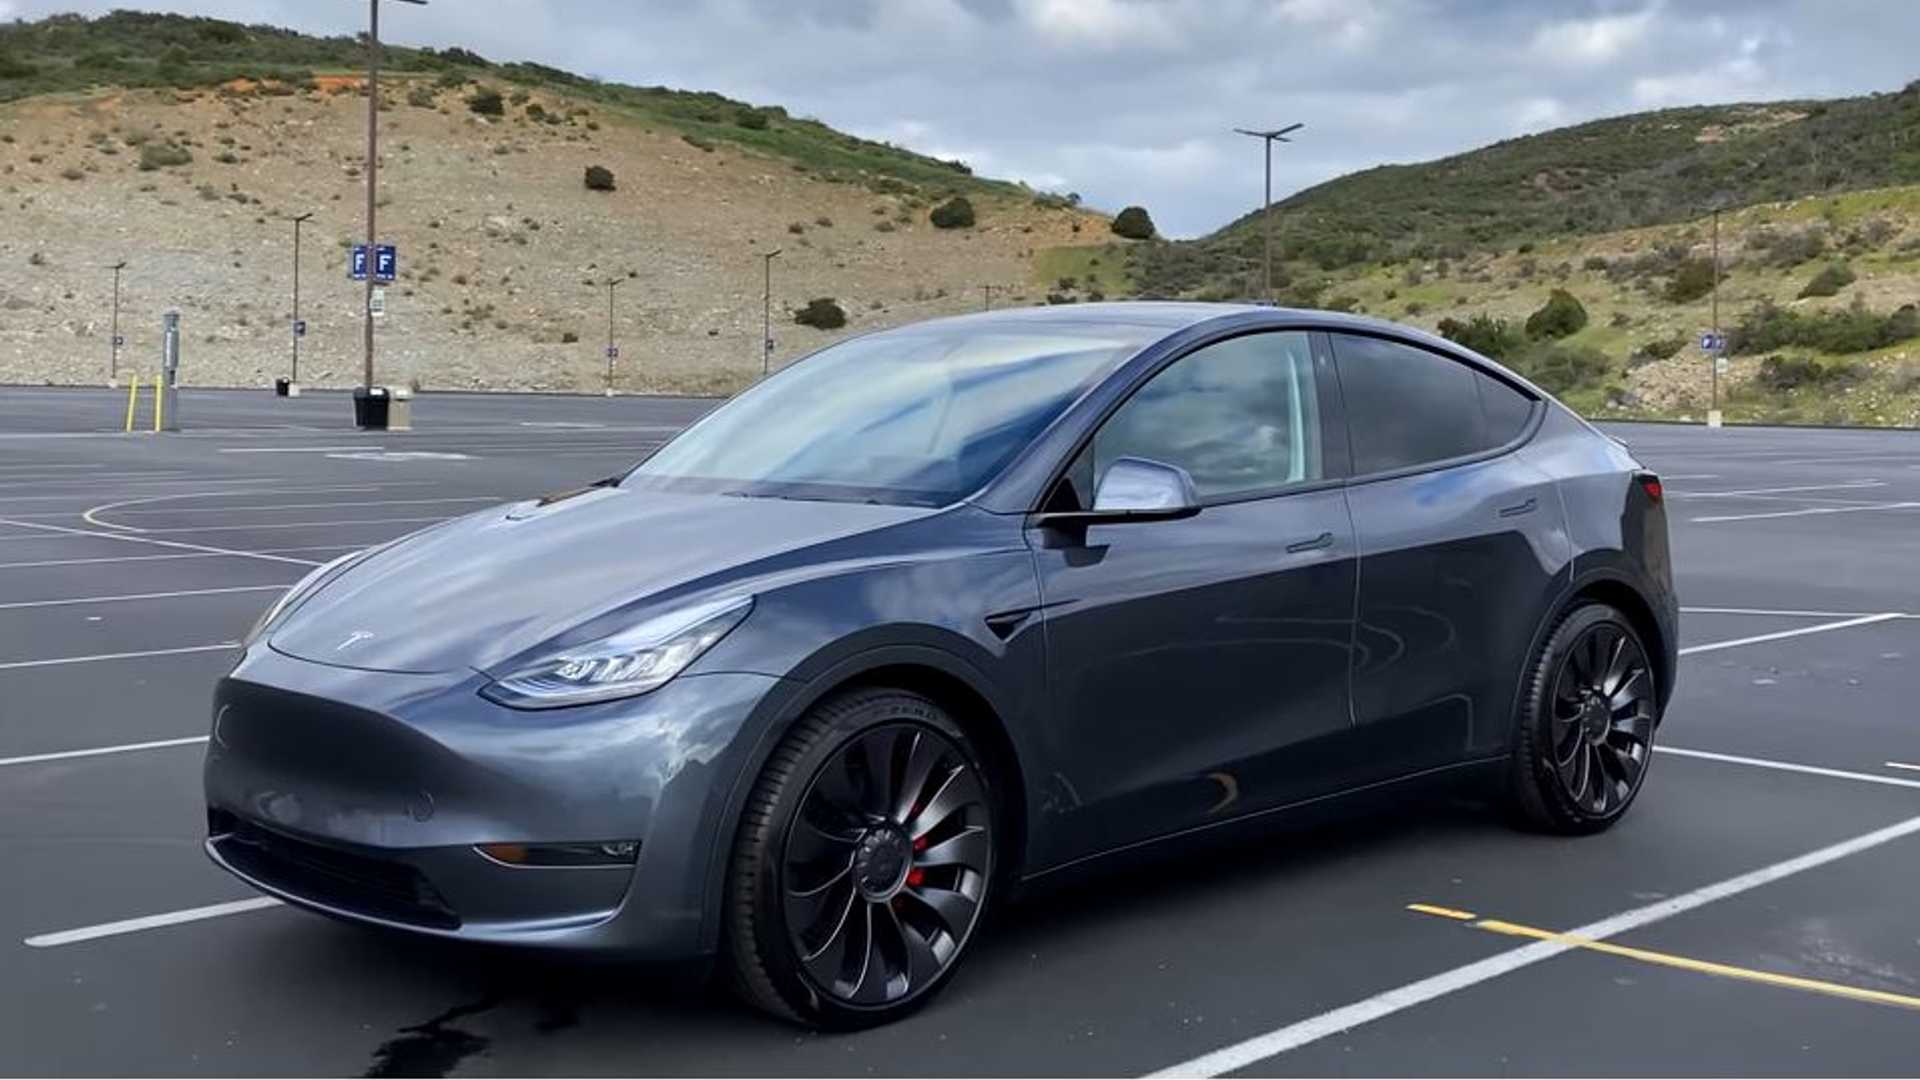 Tesla Model Y: Latest In-Depth, In-Person Review